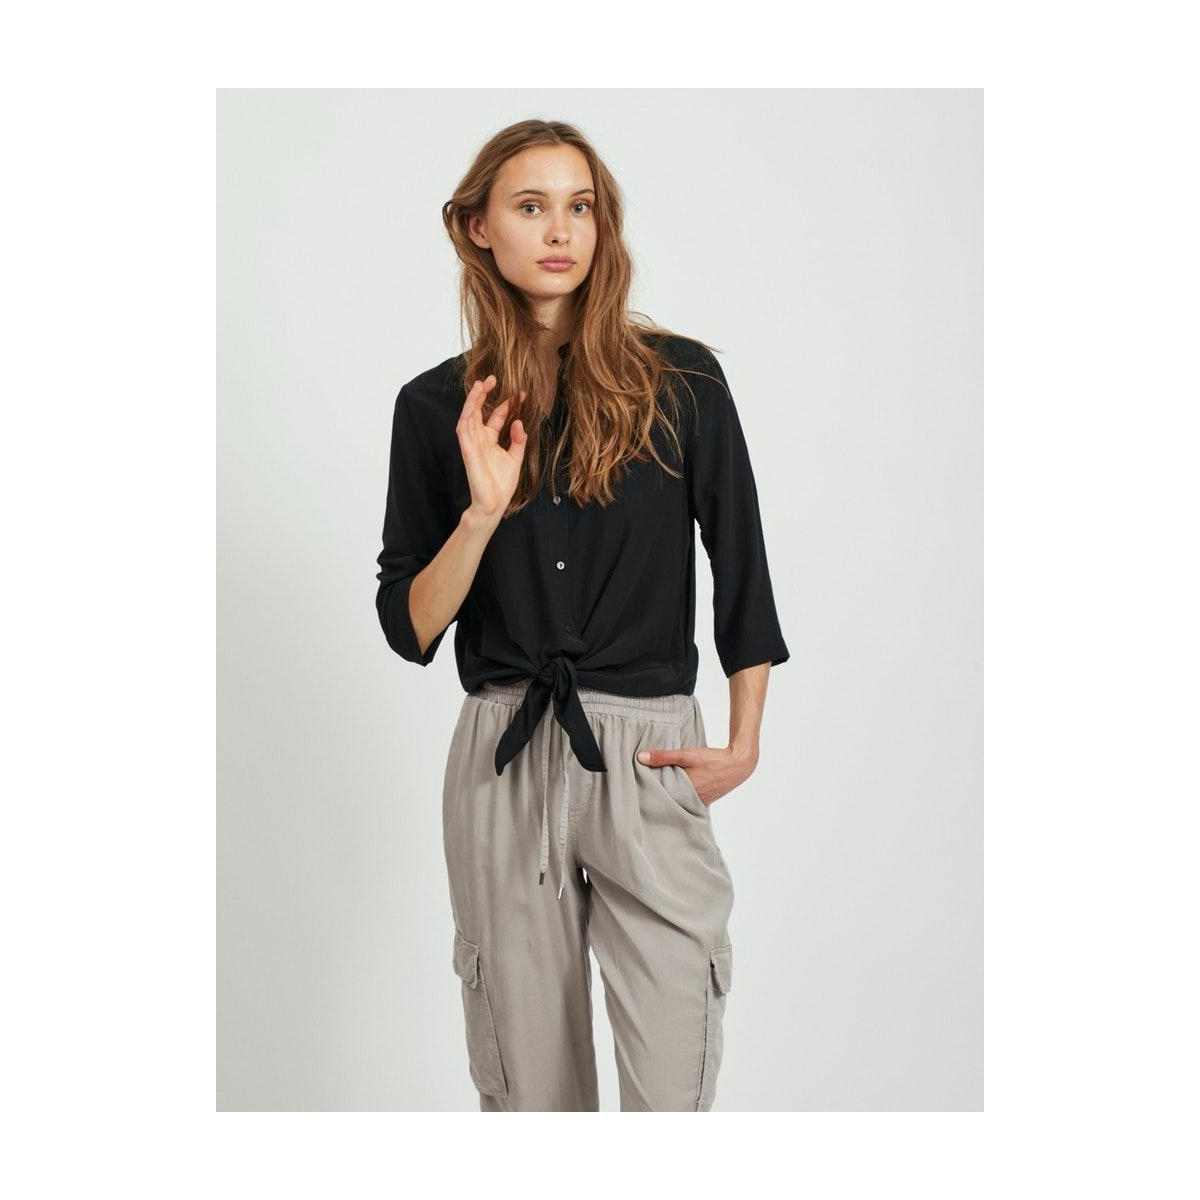 vithoma 3/4 tie shirt - fav nx 14059005 vila blouse black